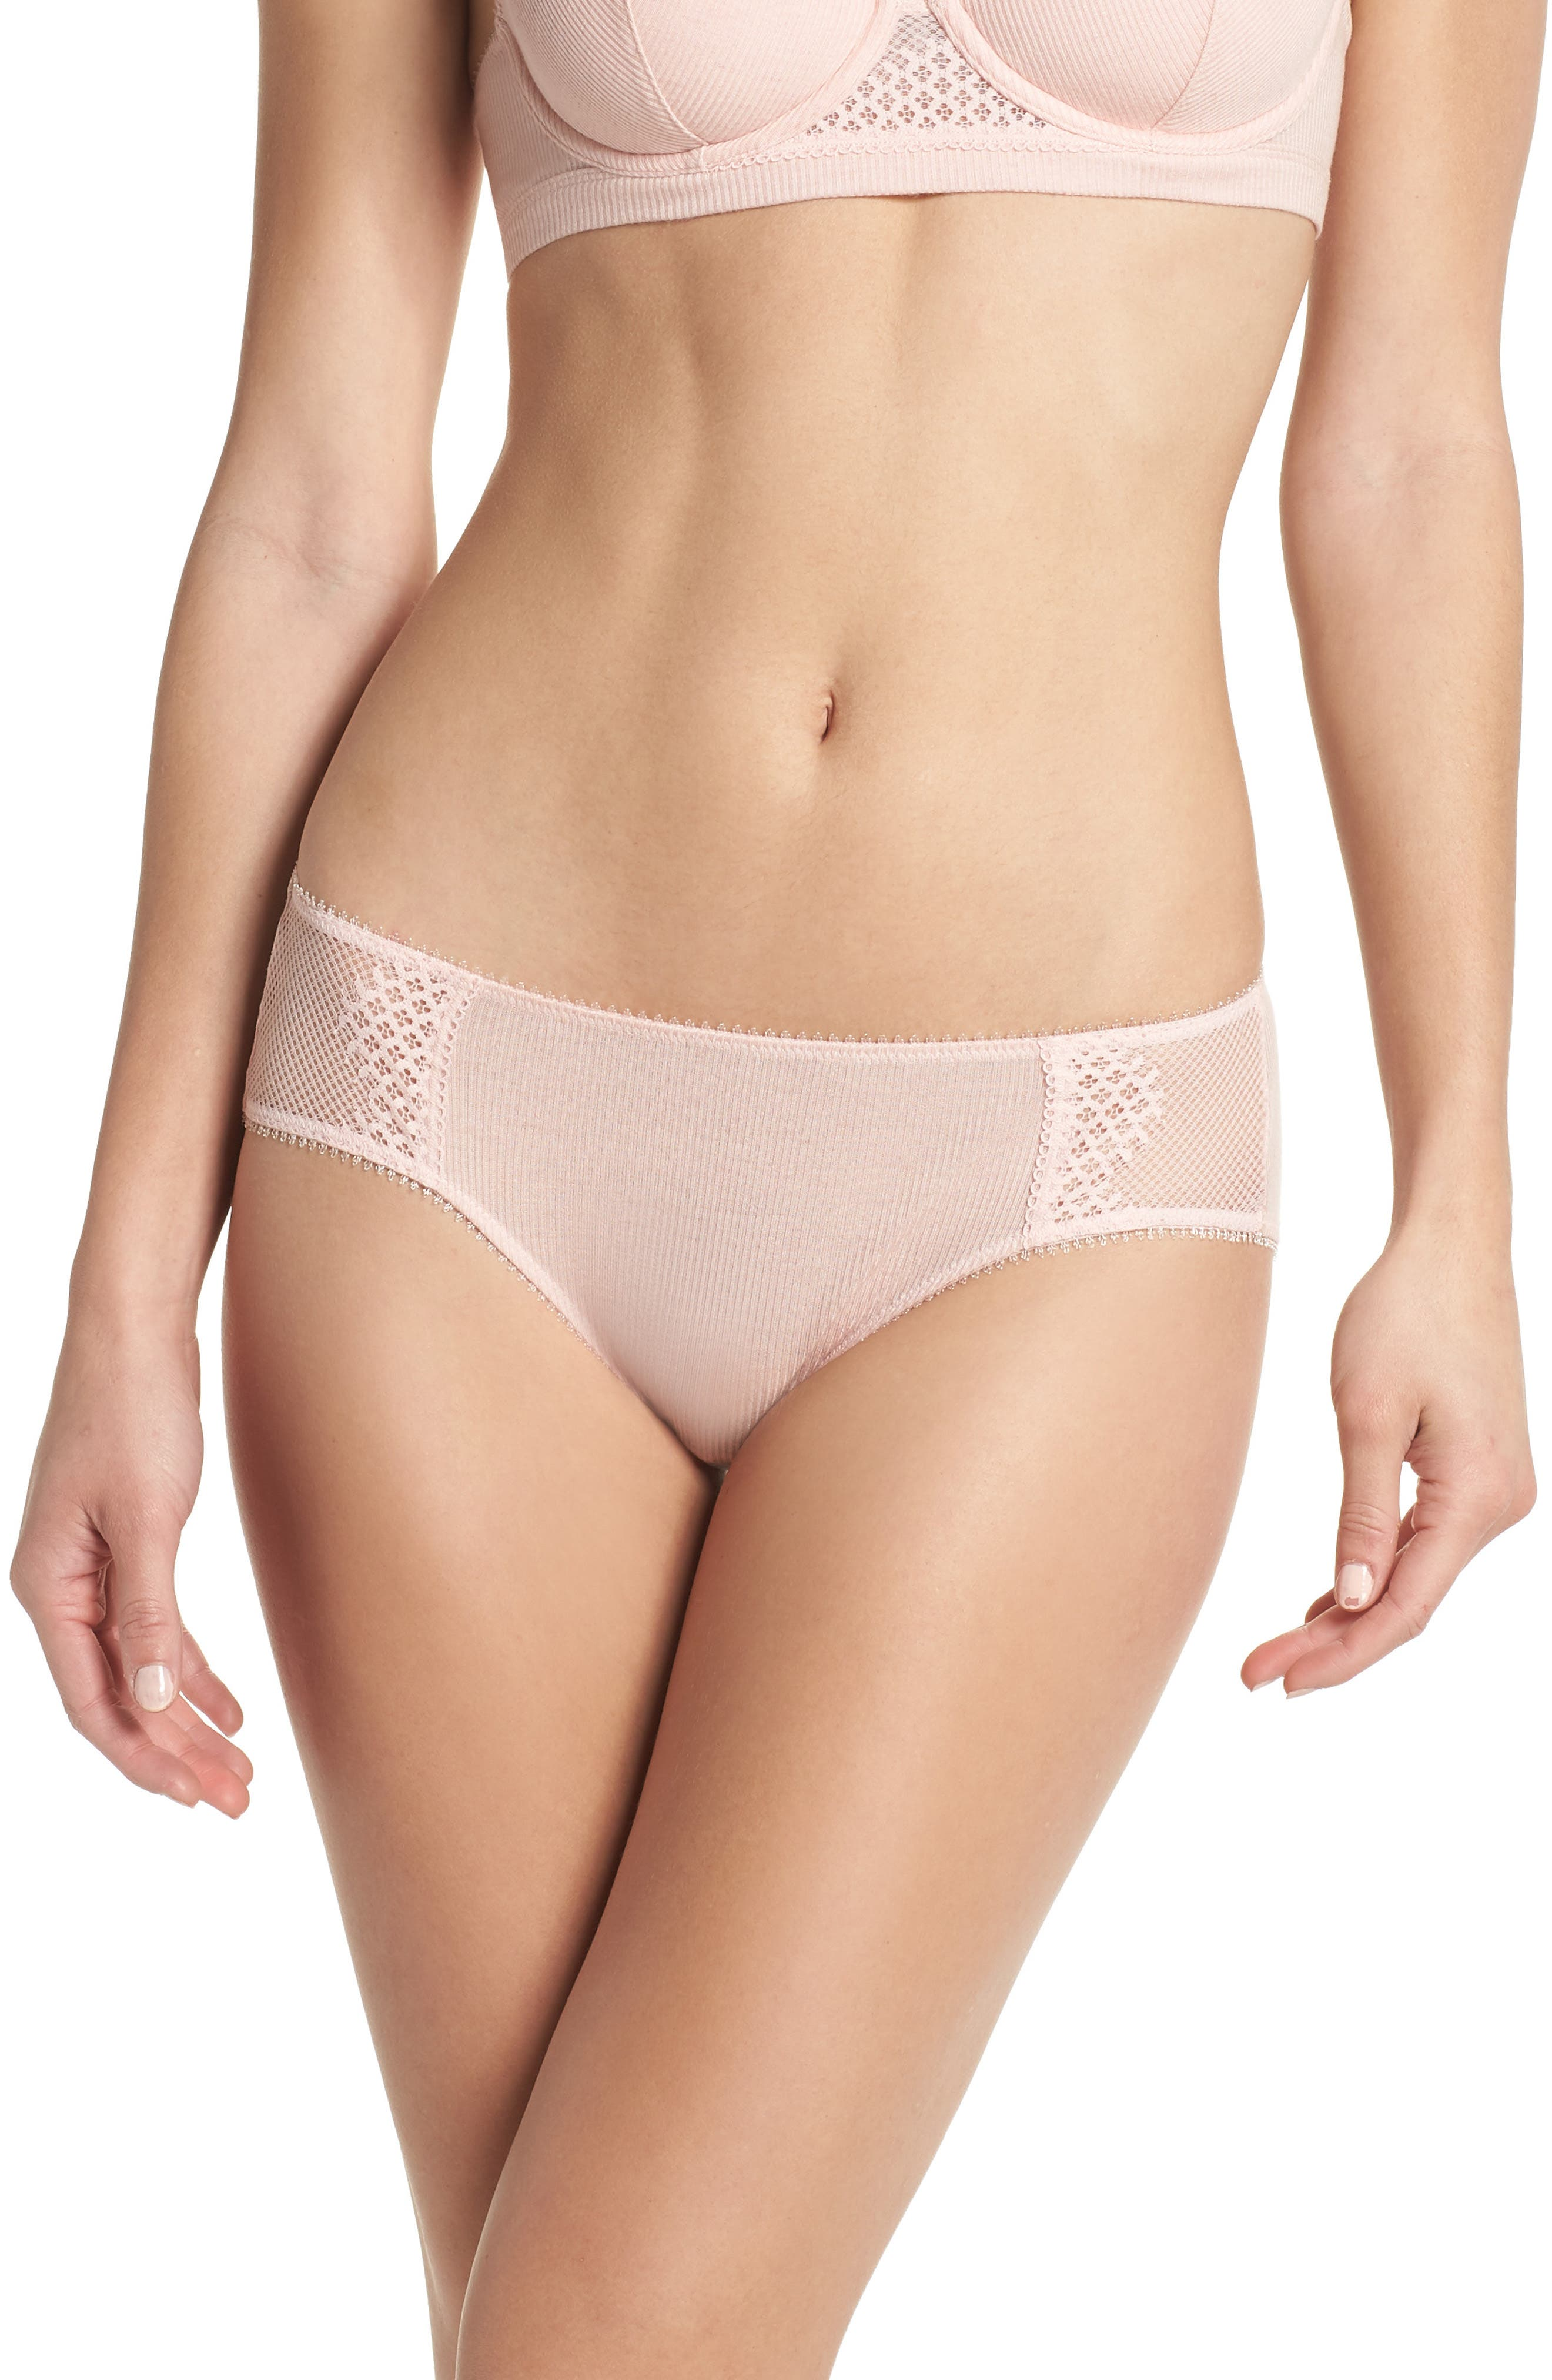 Low Rise Hipster Panties,                             Main thumbnail 1, color,                             Blush